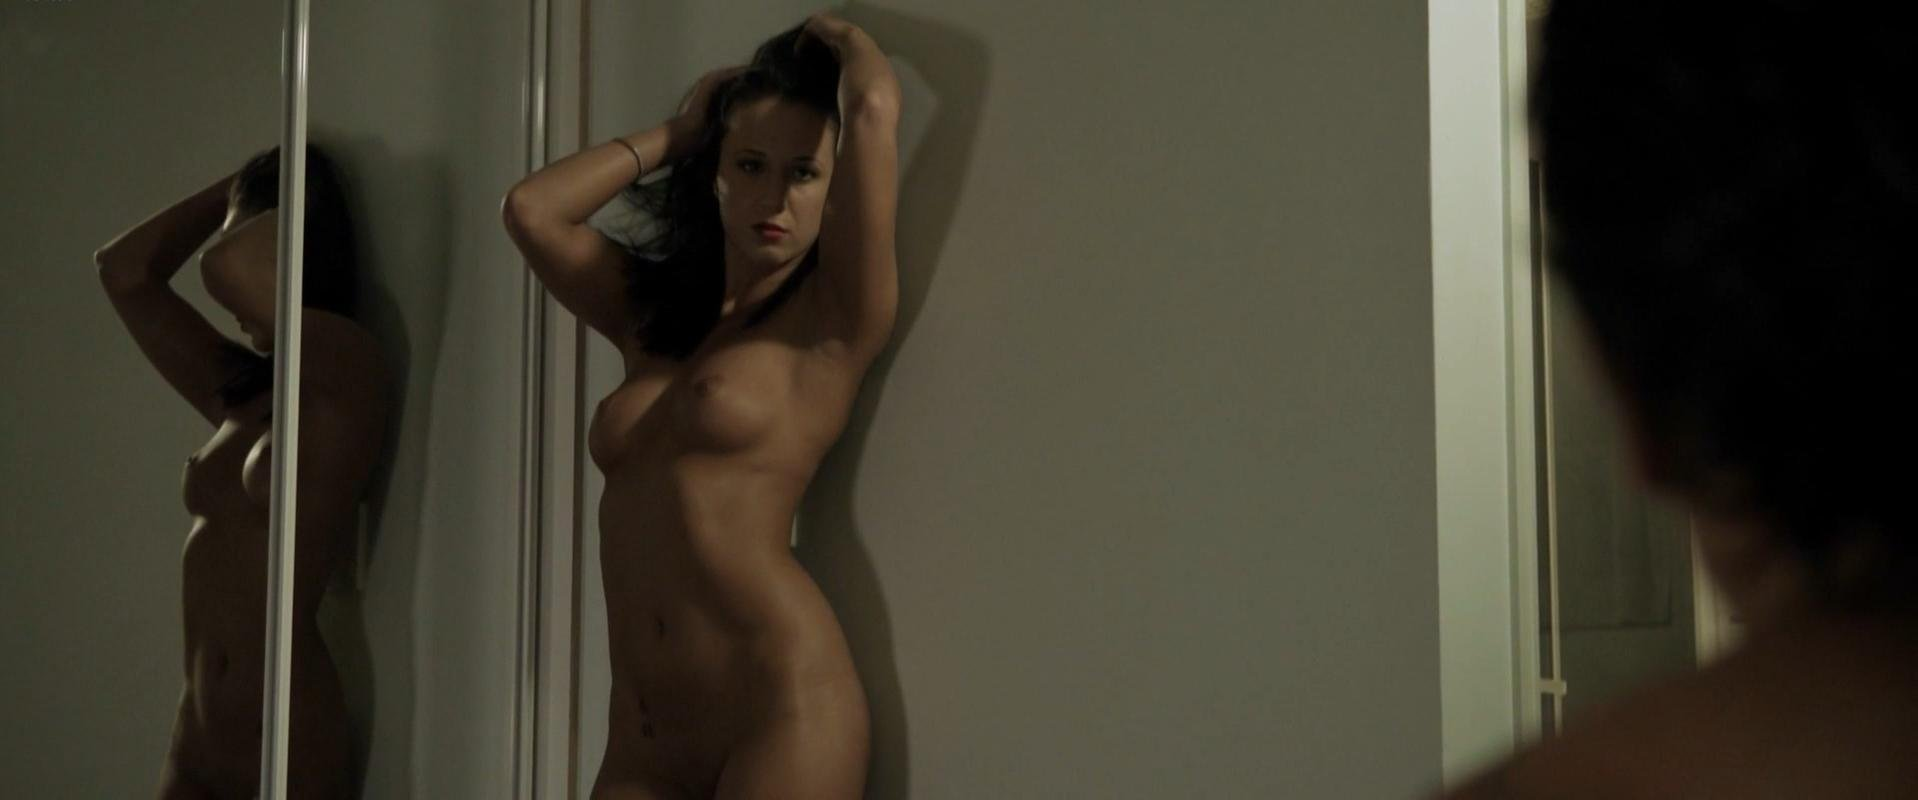 Forum on this topic: Sarah Schneider Naked - 9 New Photos, meghan-flather-nude-war-2007-hd/